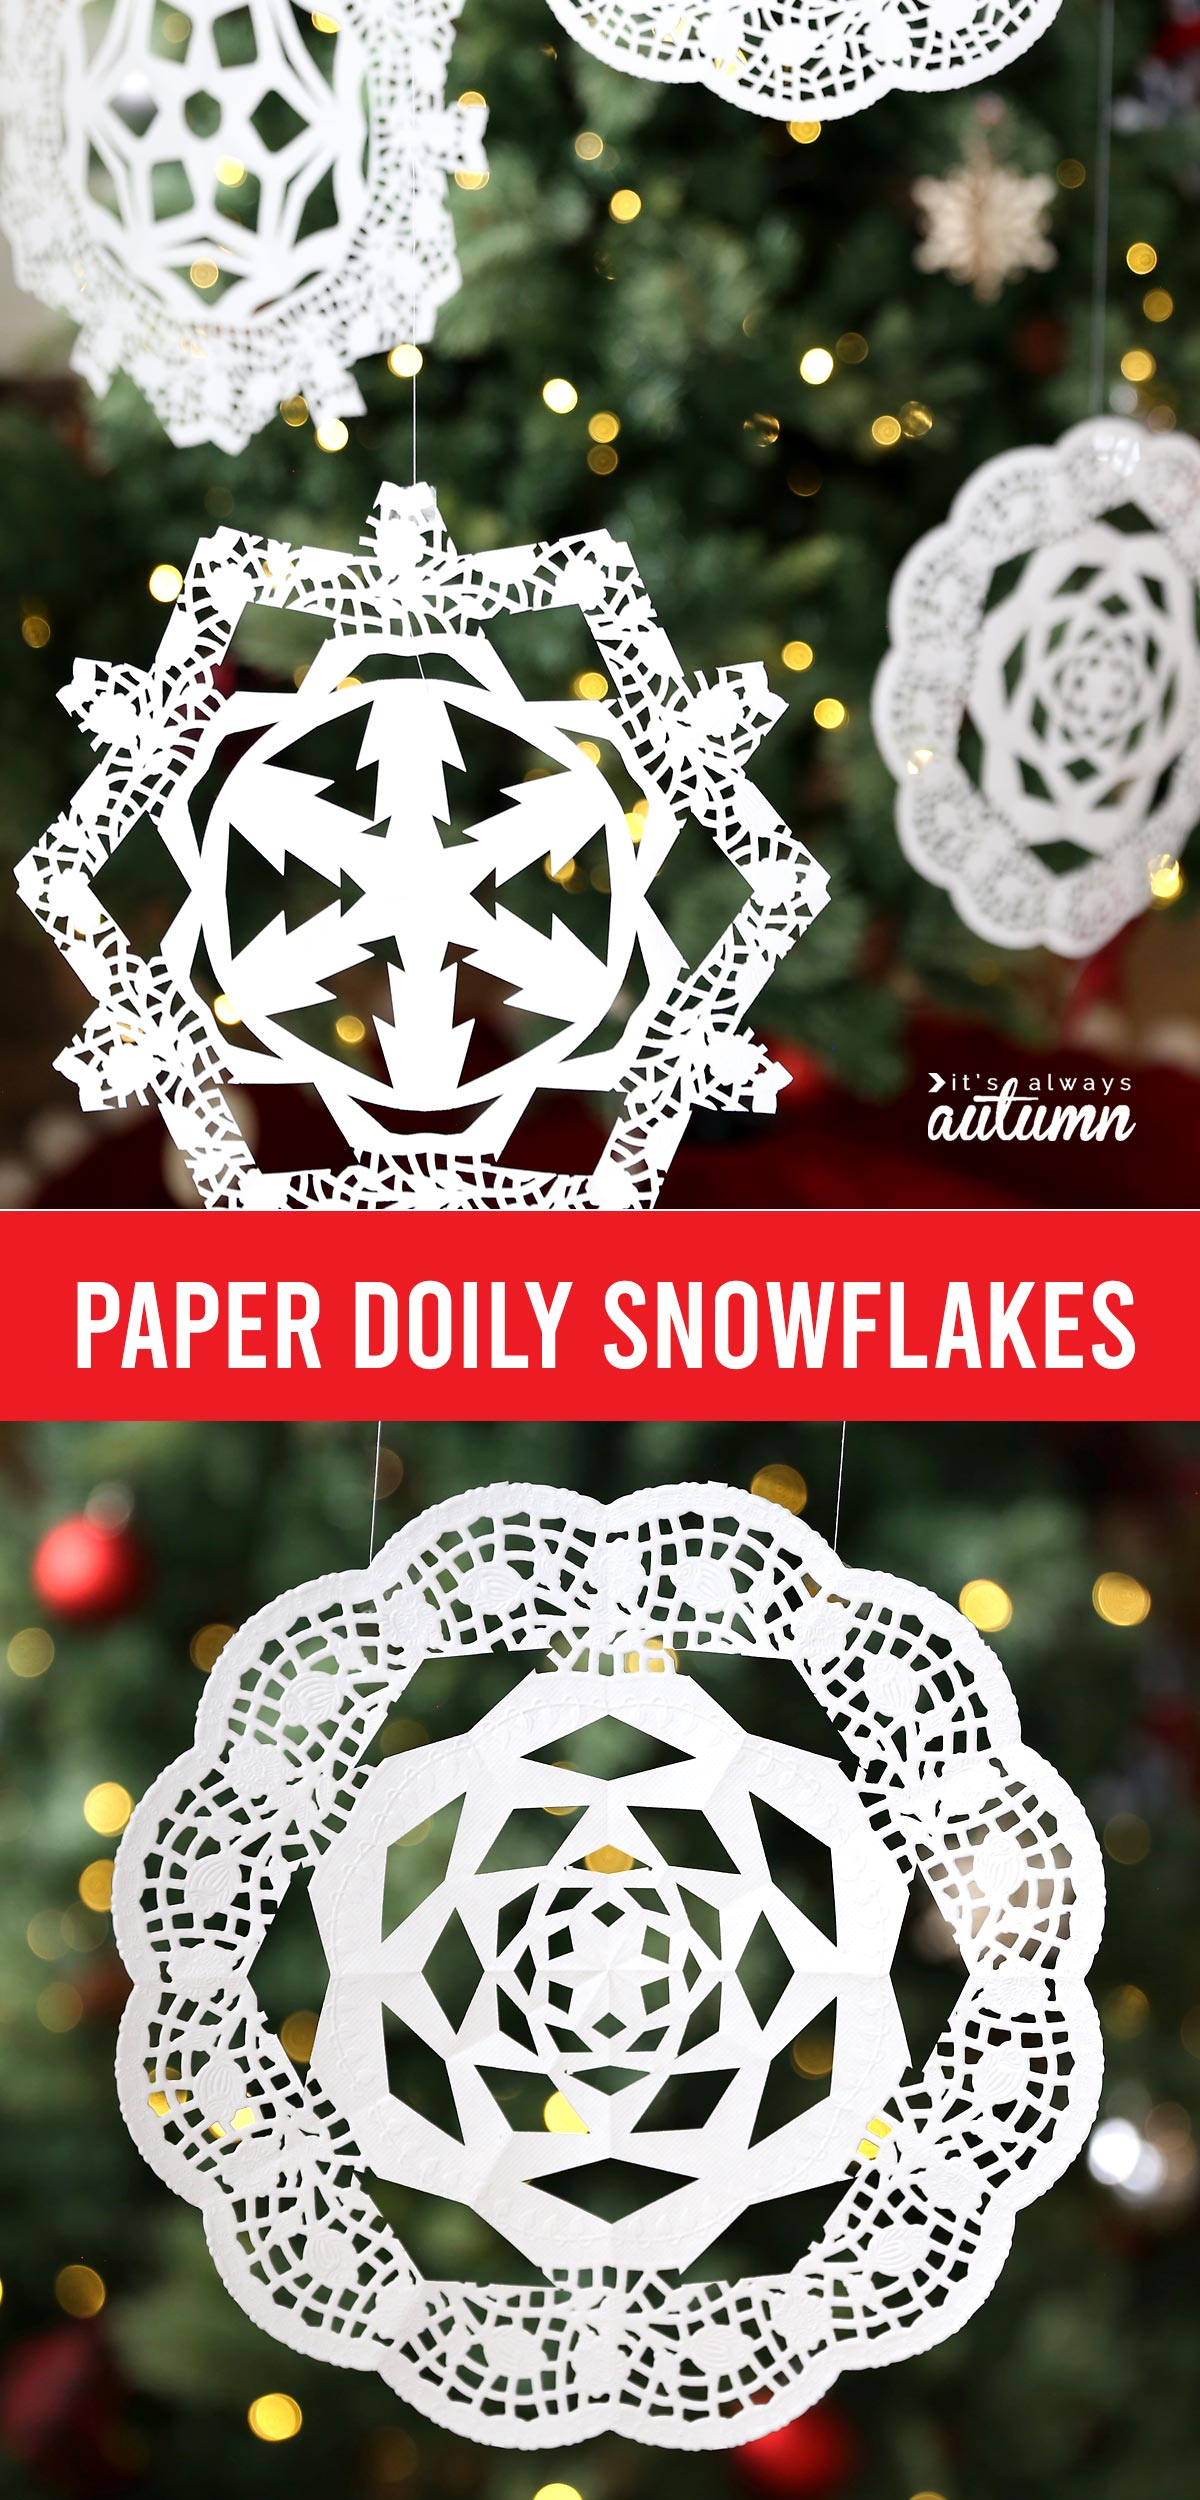 Snowflakes cut from paper doilies